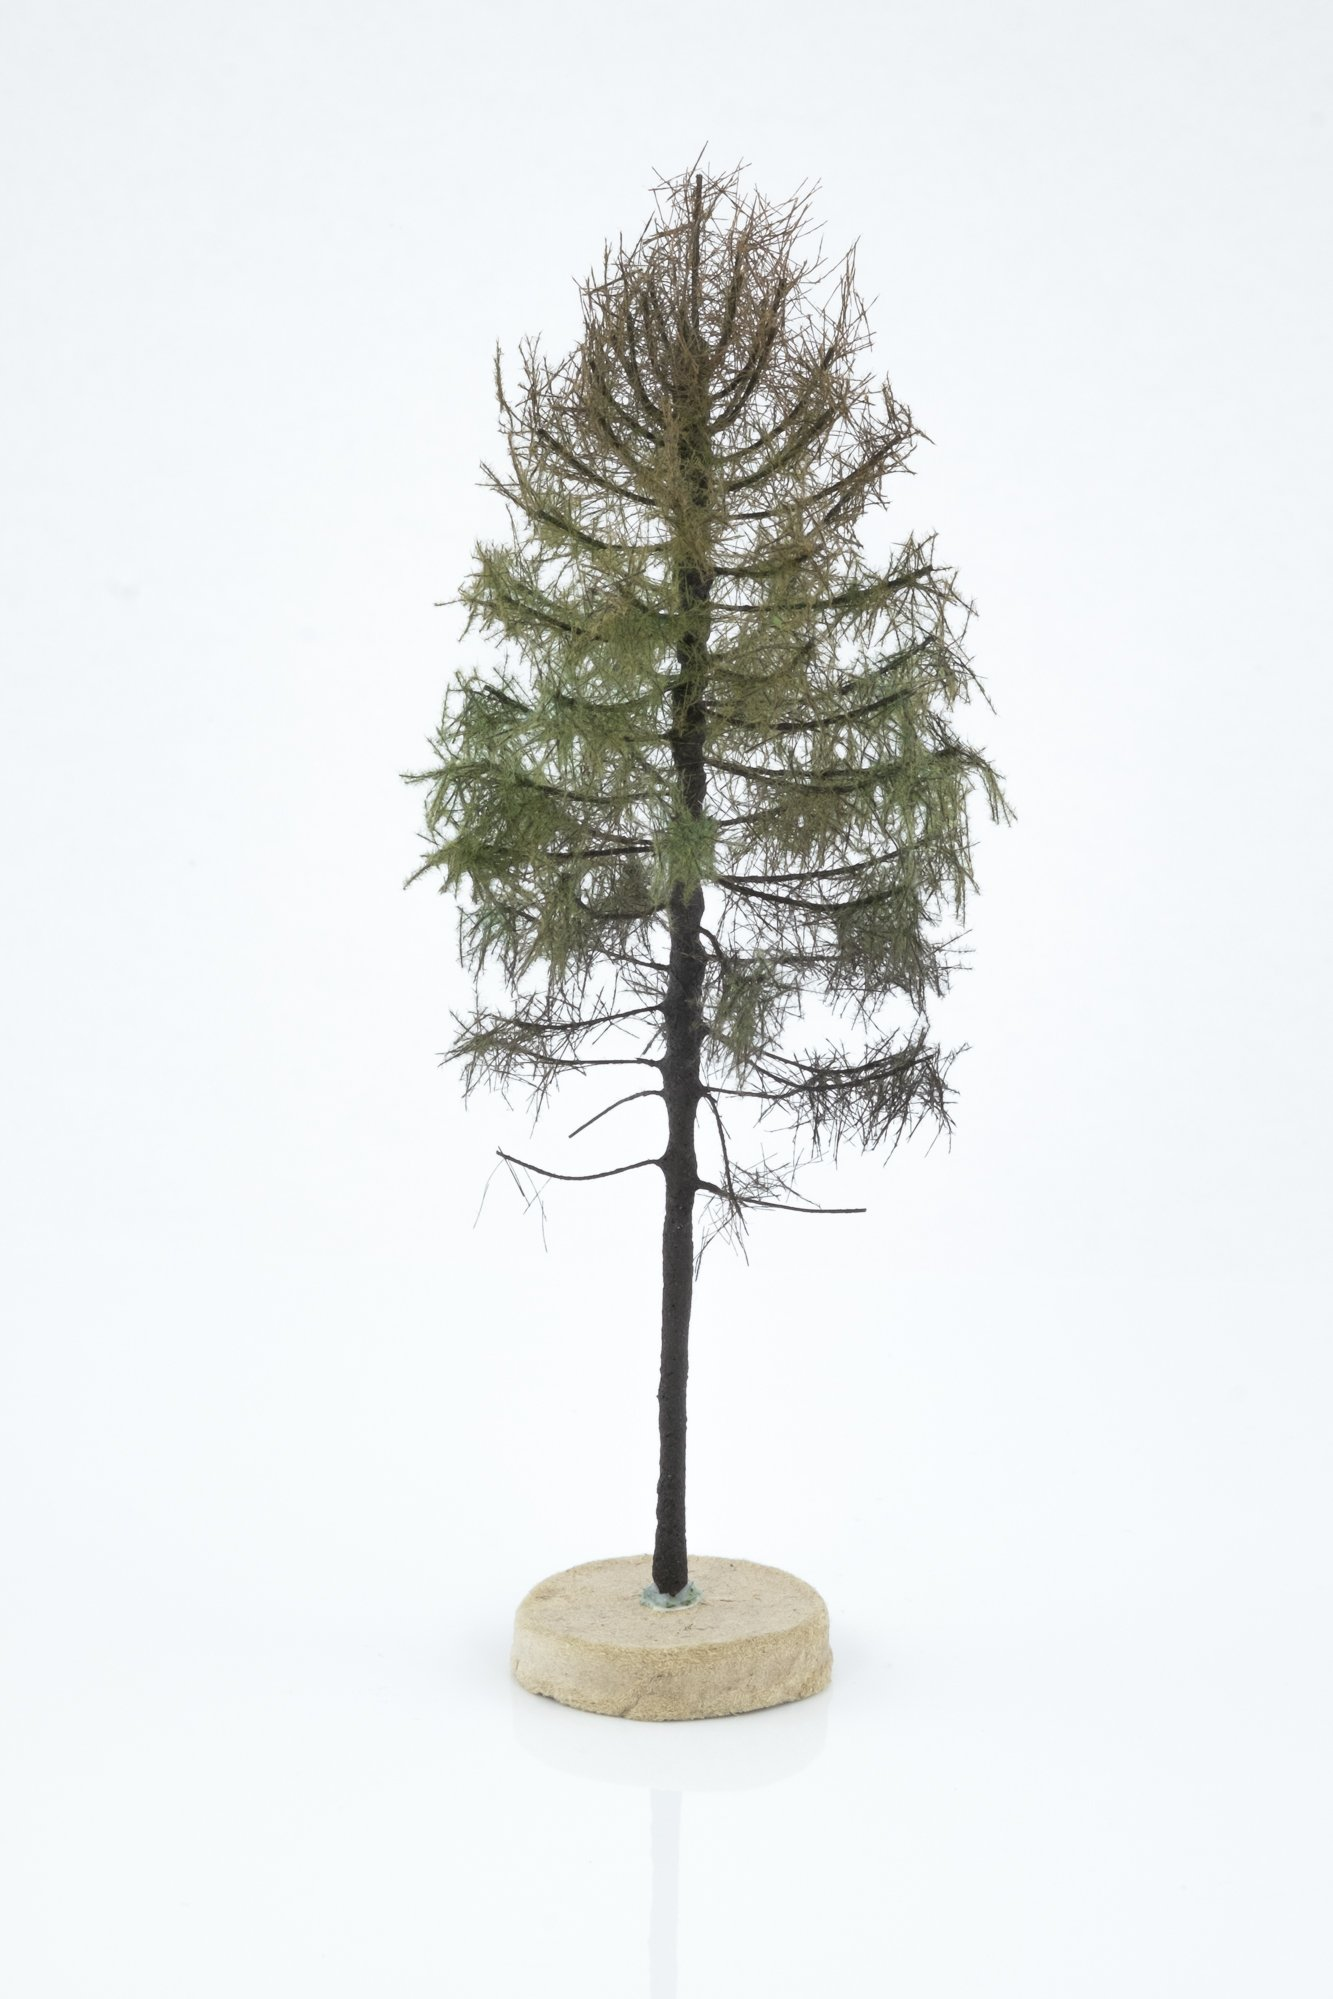 Hand-made, green, dry larch tree model. Size between 14 and 16 cm. Made from high quality model supplies by Primo Models.